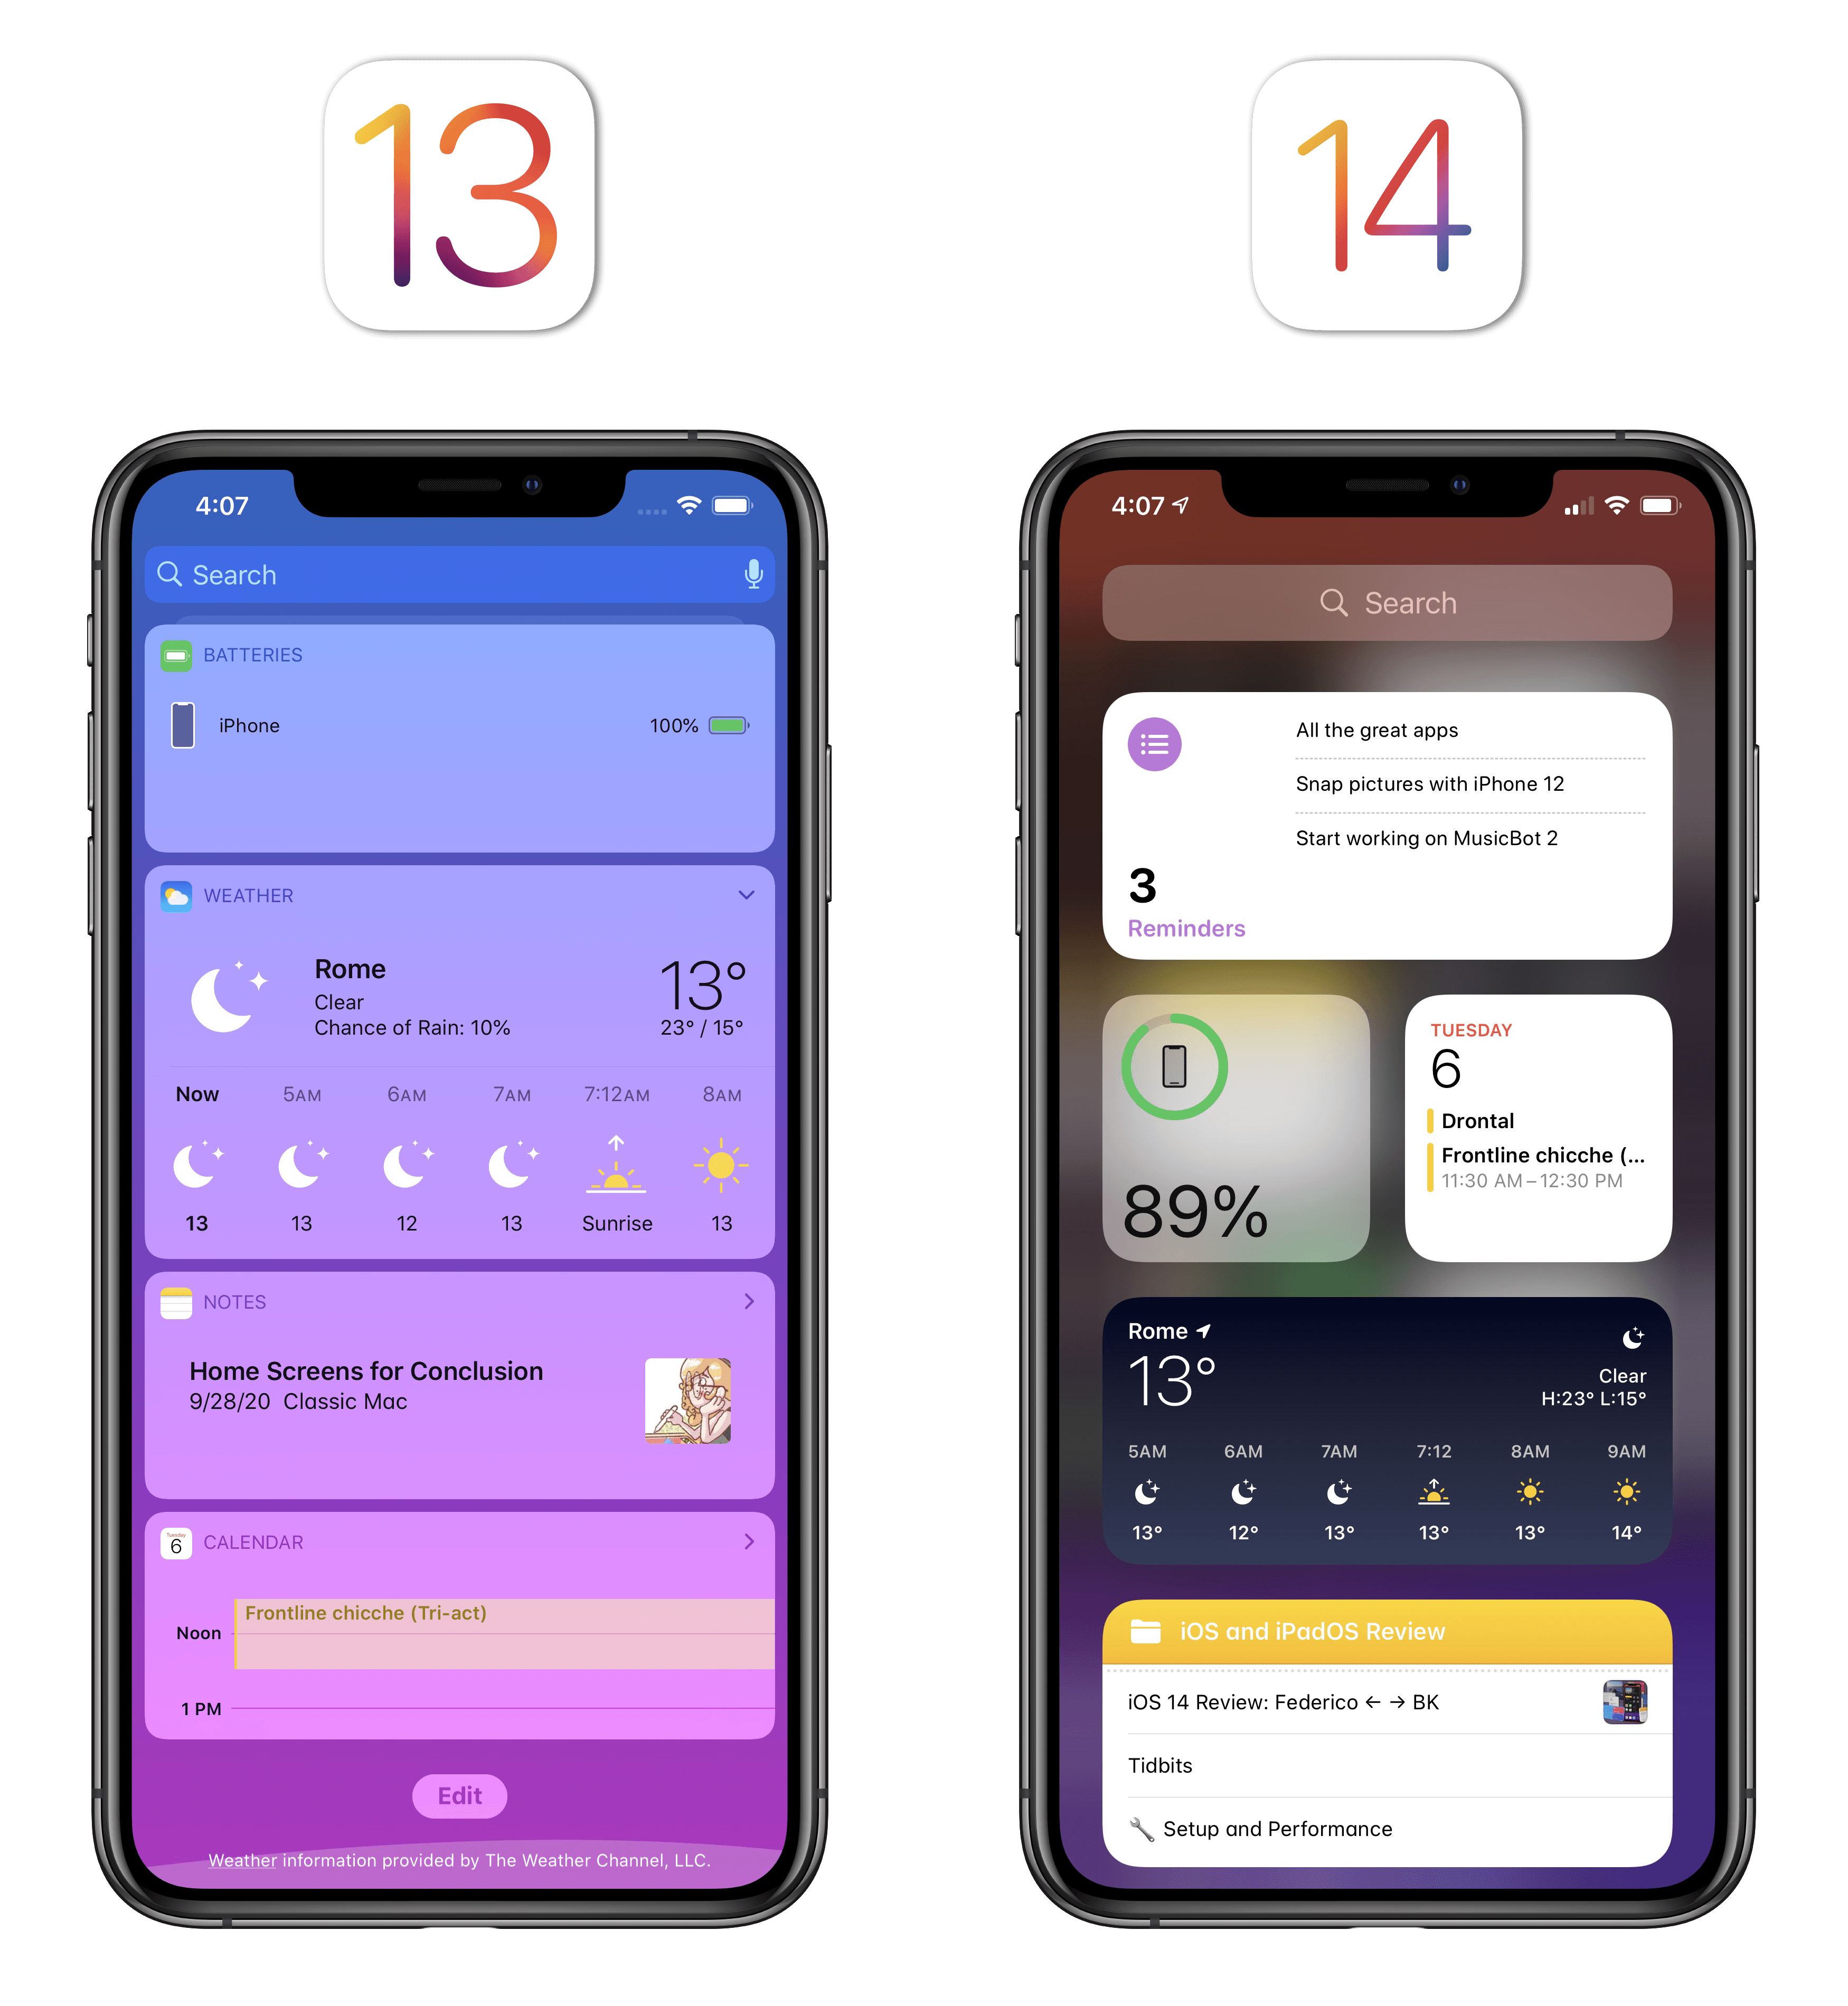 The difference between widgets in iOS 13 and 14 is striking.